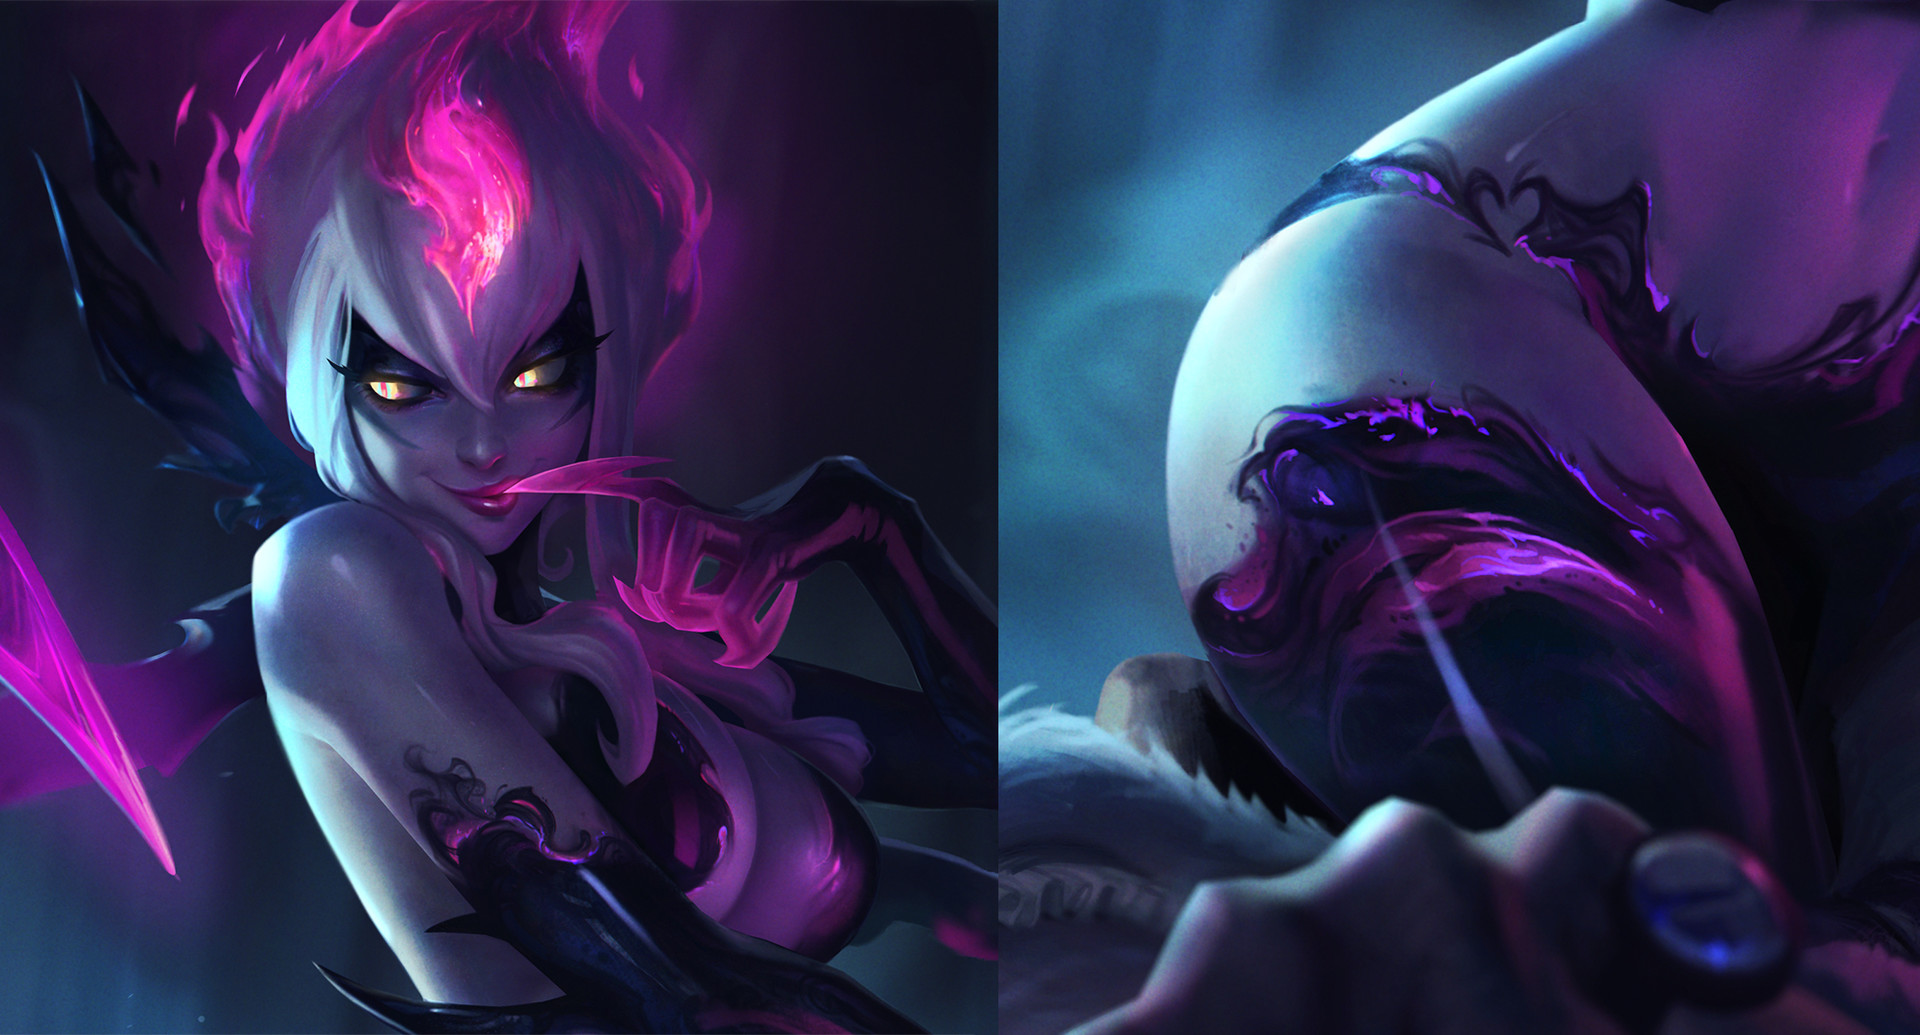 The Artist Behind The New Evelynn Splash Posted Other Ideas She Had